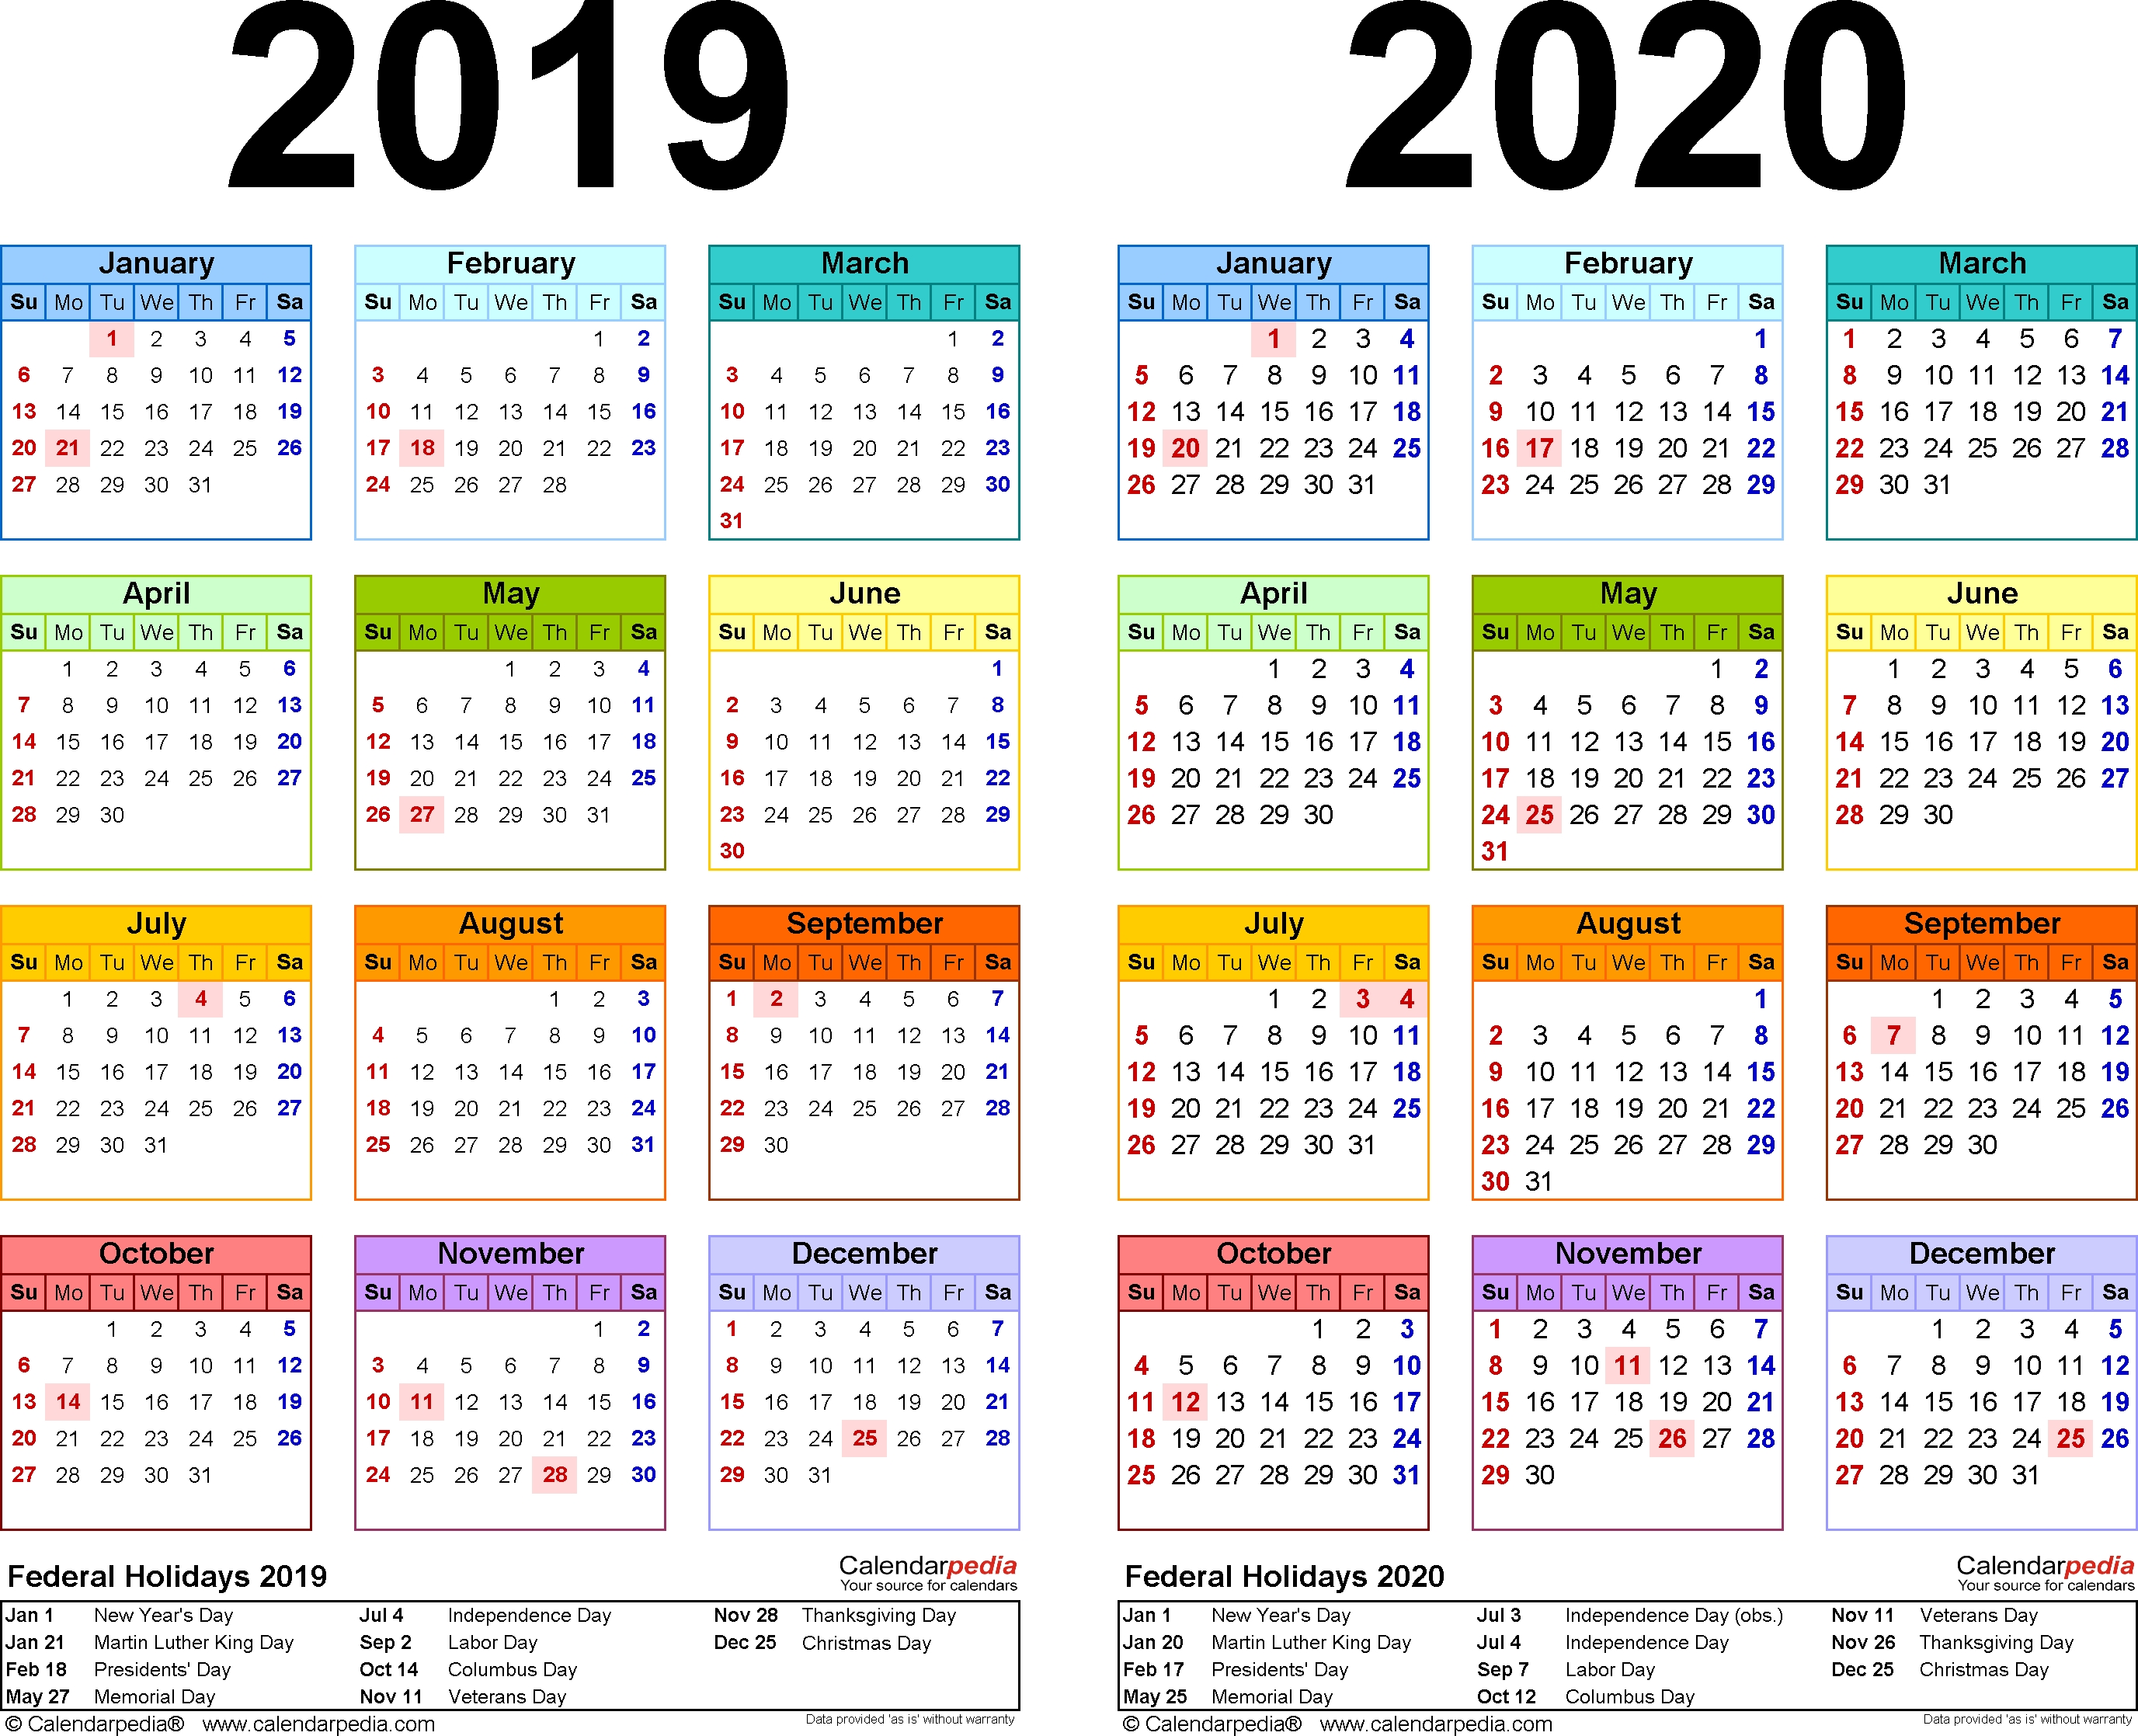 2019-2020 Calendar - Free Printable Two-Year Pdf Calendars within Year At A Glance Printable Calendar 2019/2020